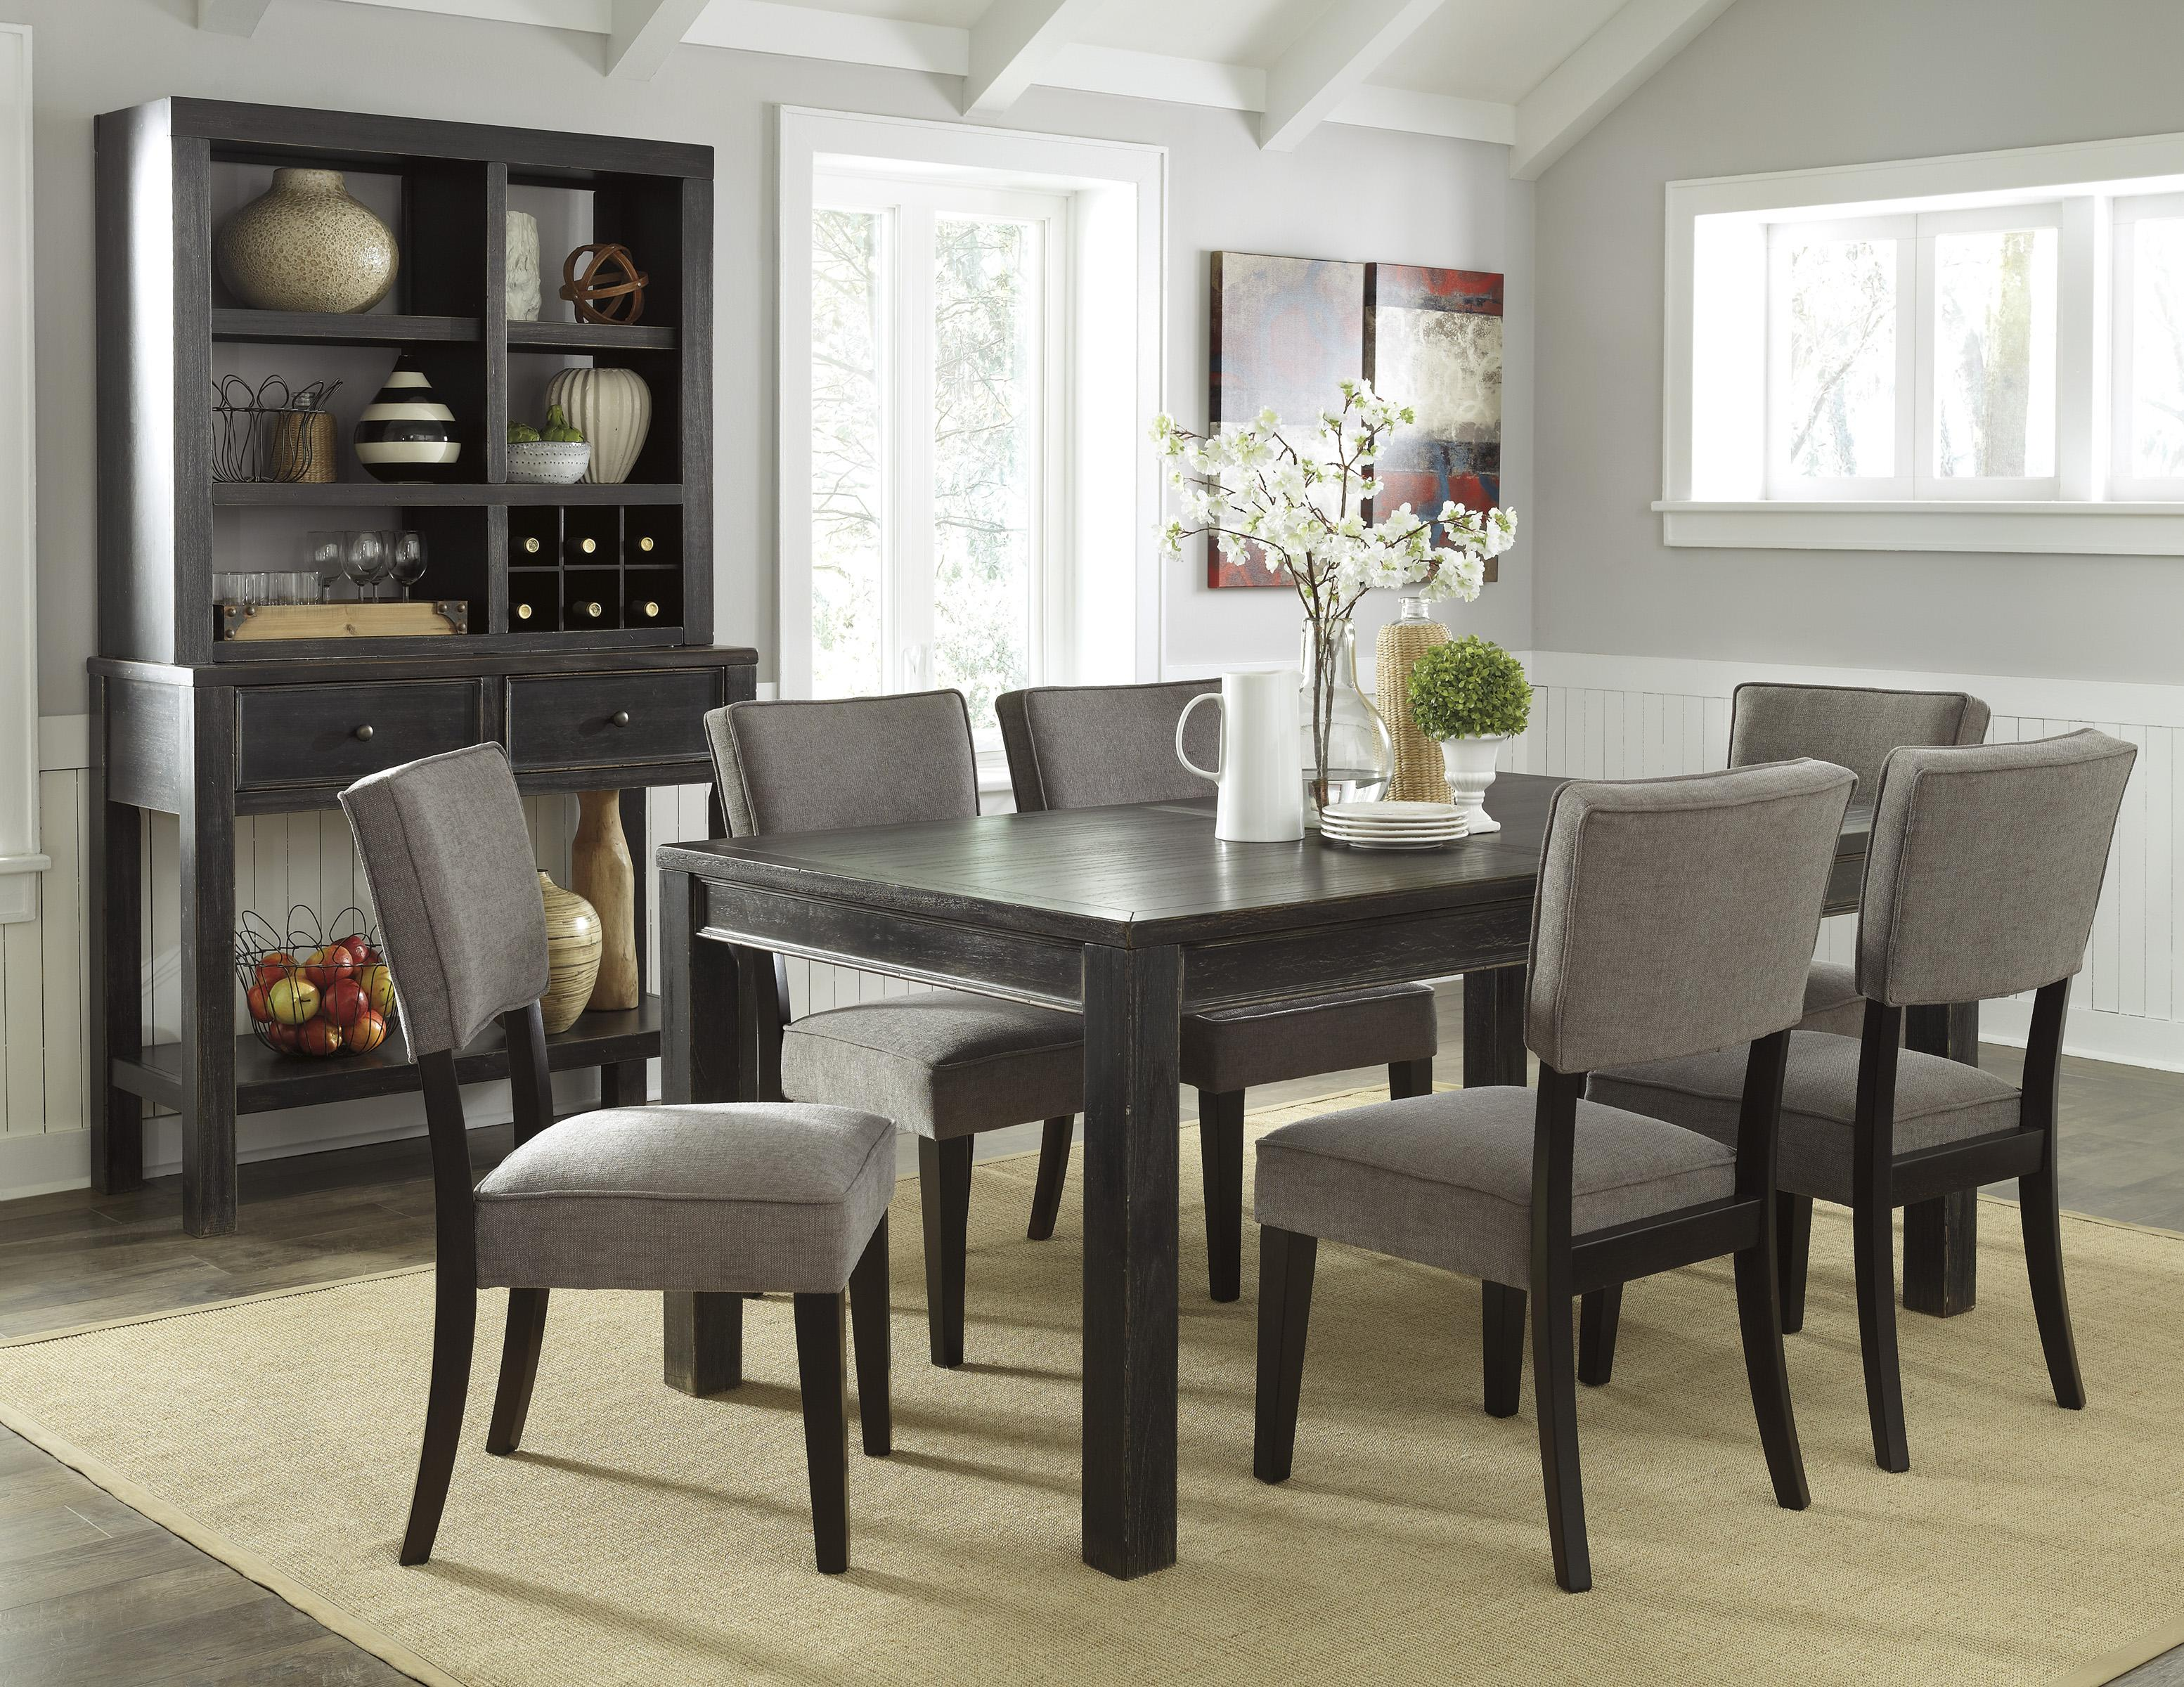 Signature Design by Ashley Gavelston Casual Dining Room Group - Item Number: D532 Dining Room Group 13